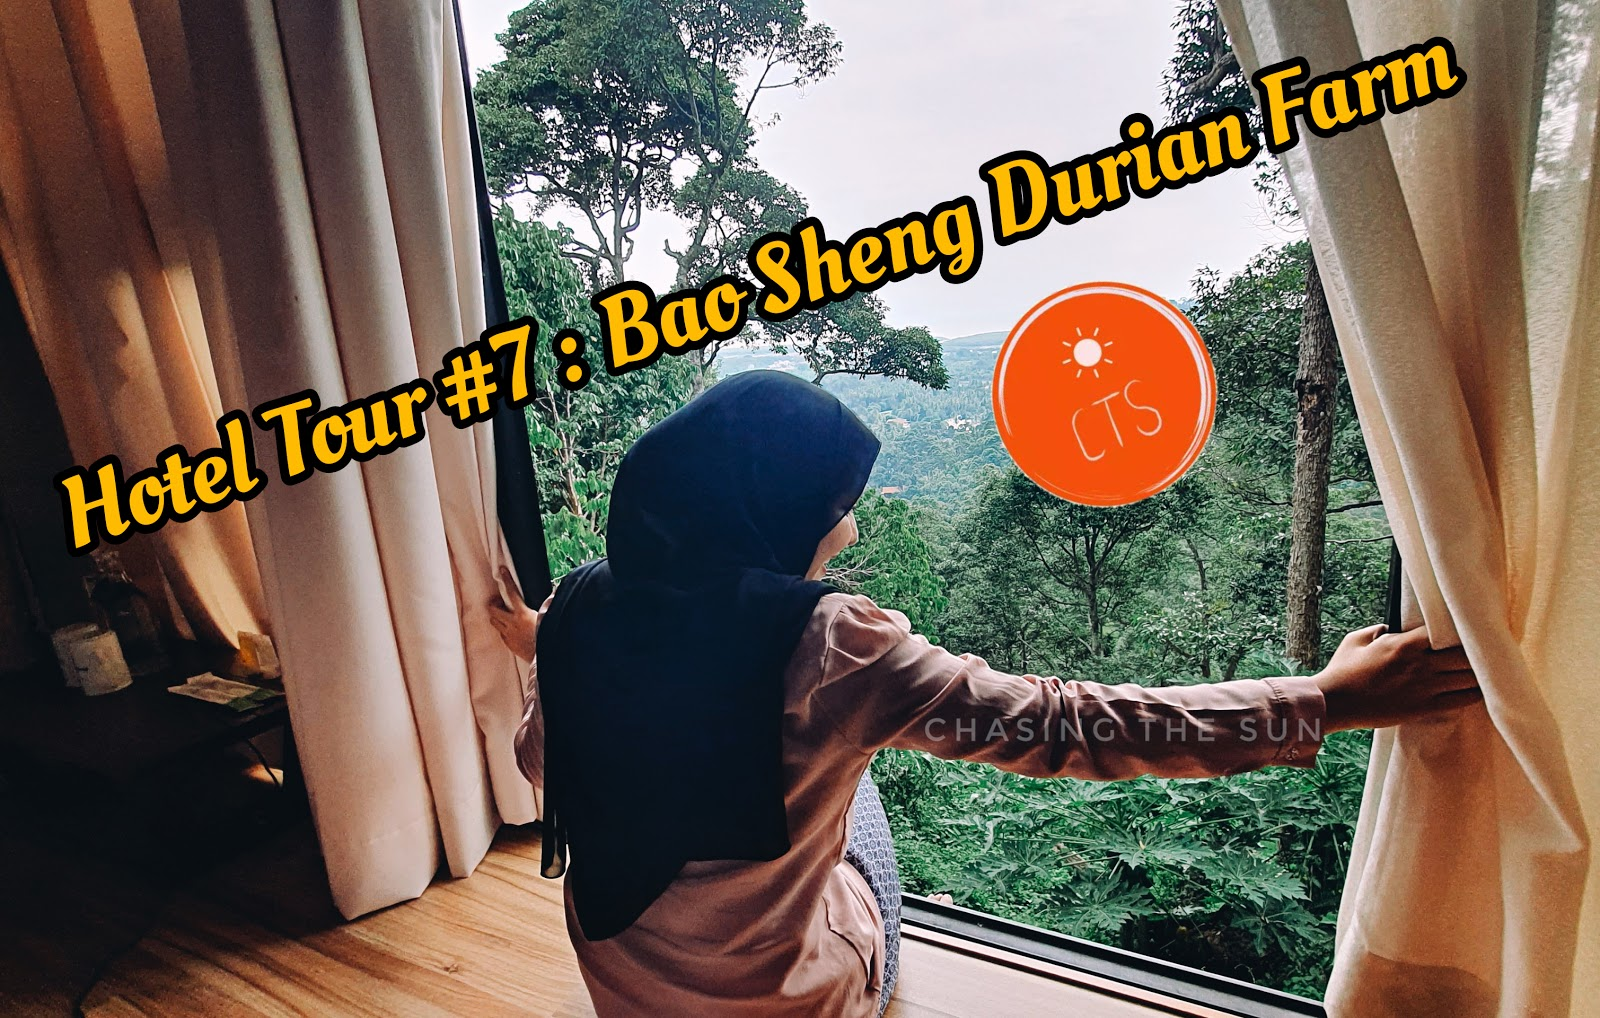 Hotel Tour #7 : Bao Sheng Durian Farm | Nature Retreat in Balik Pulau, Best Tak?